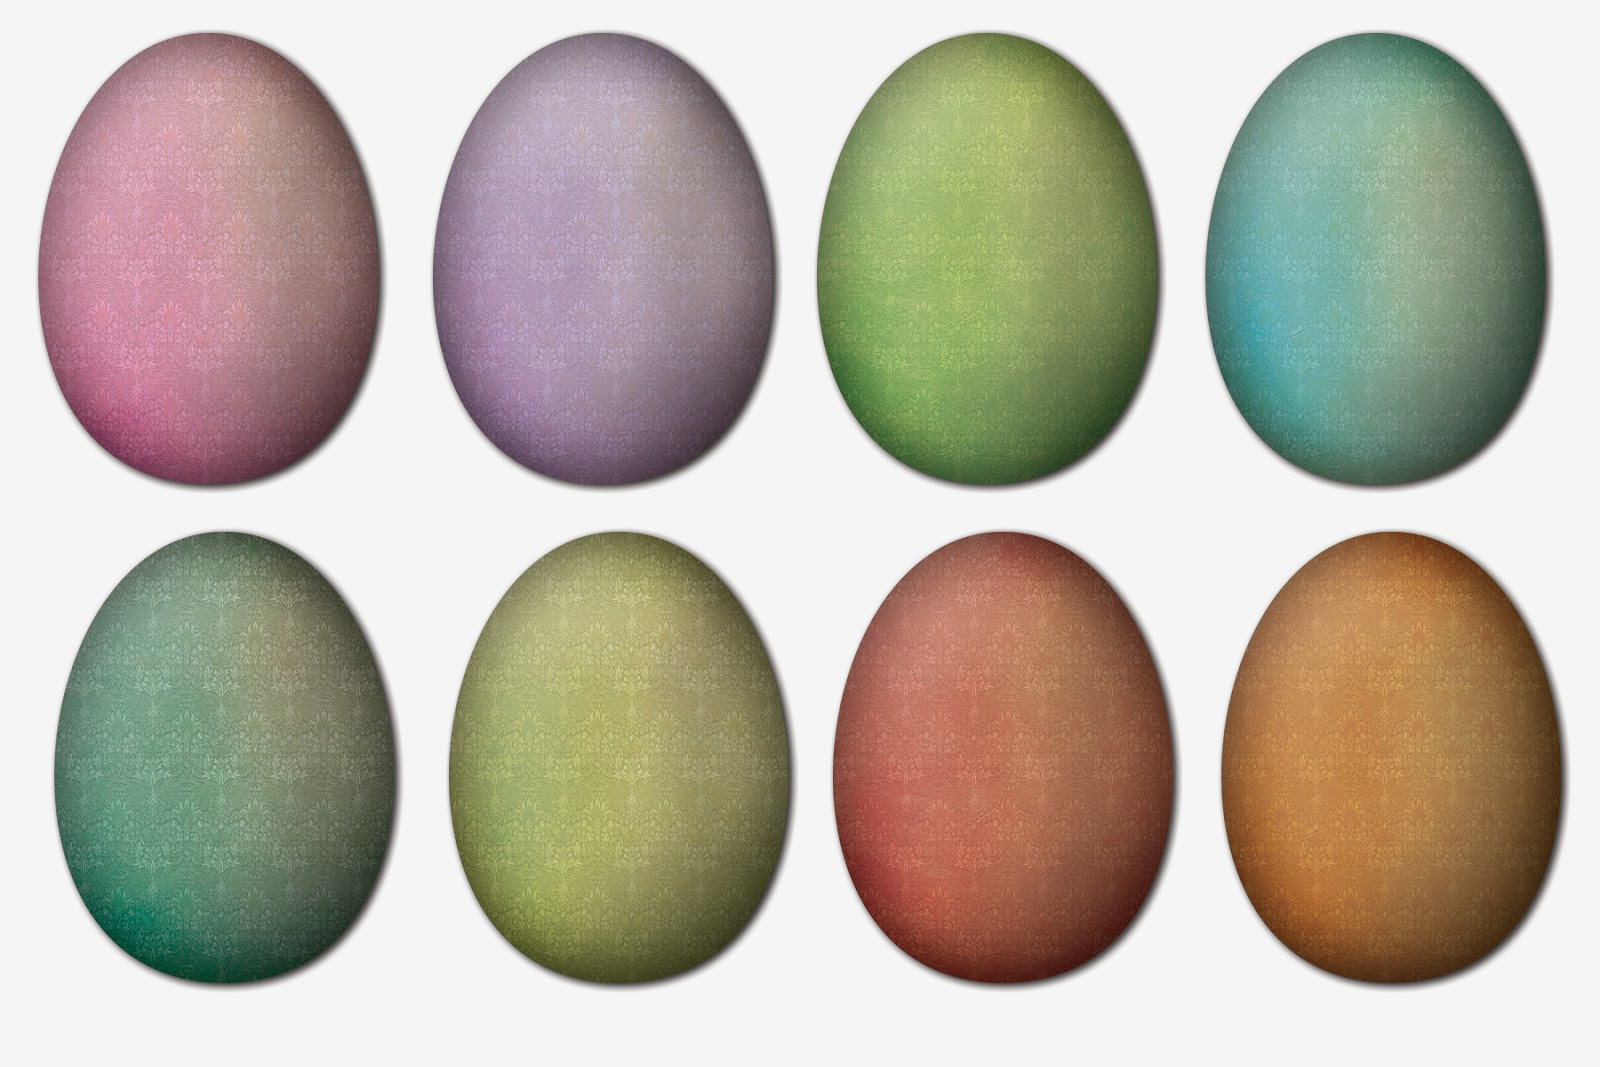 free easter egg images